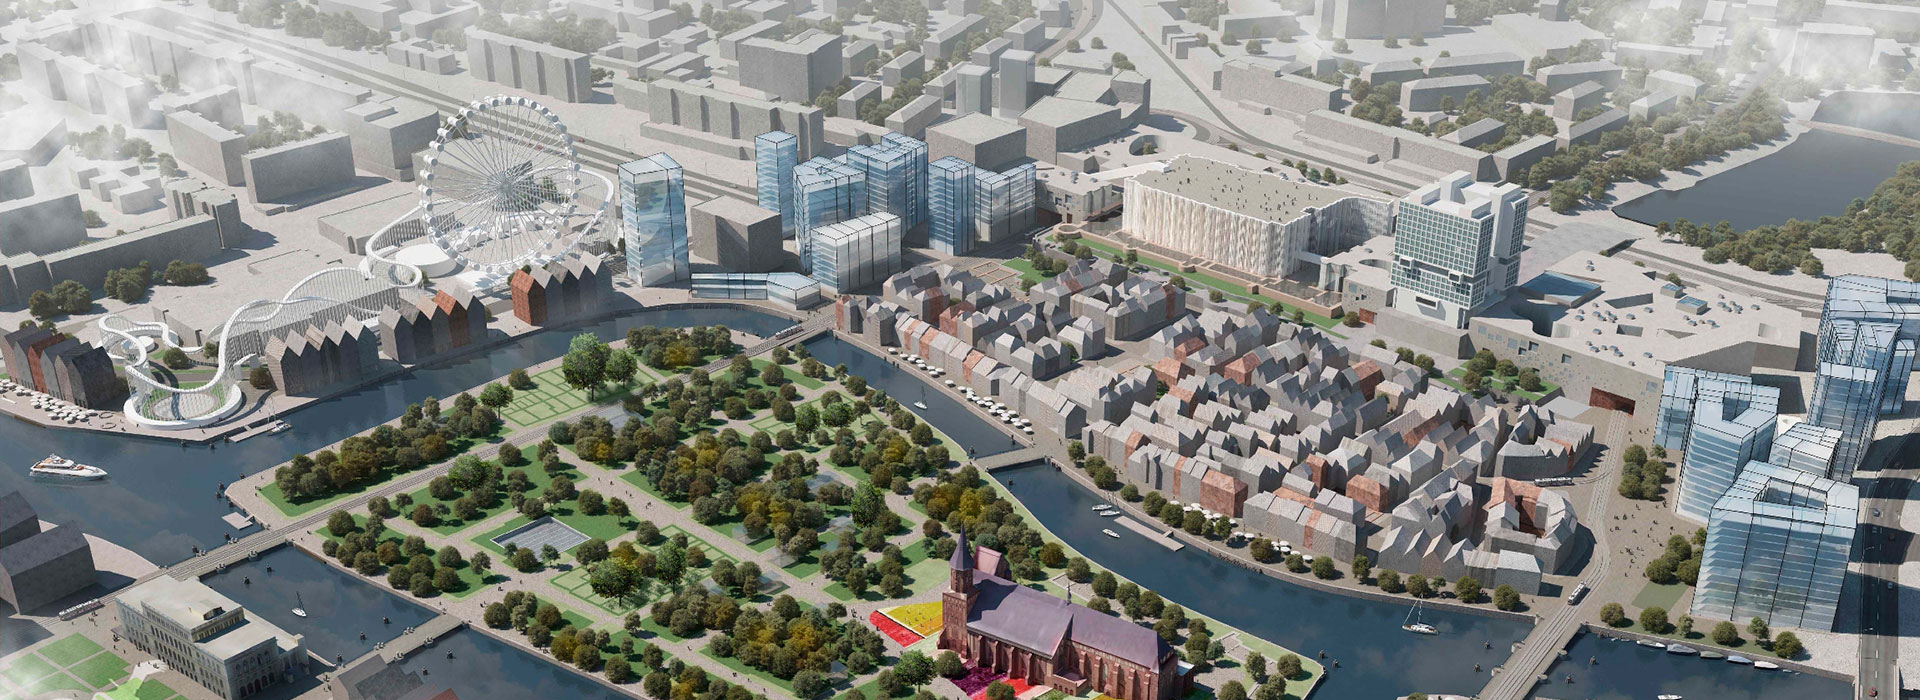 Remaking history: how Kaliningrad's new centre will look both forward and back